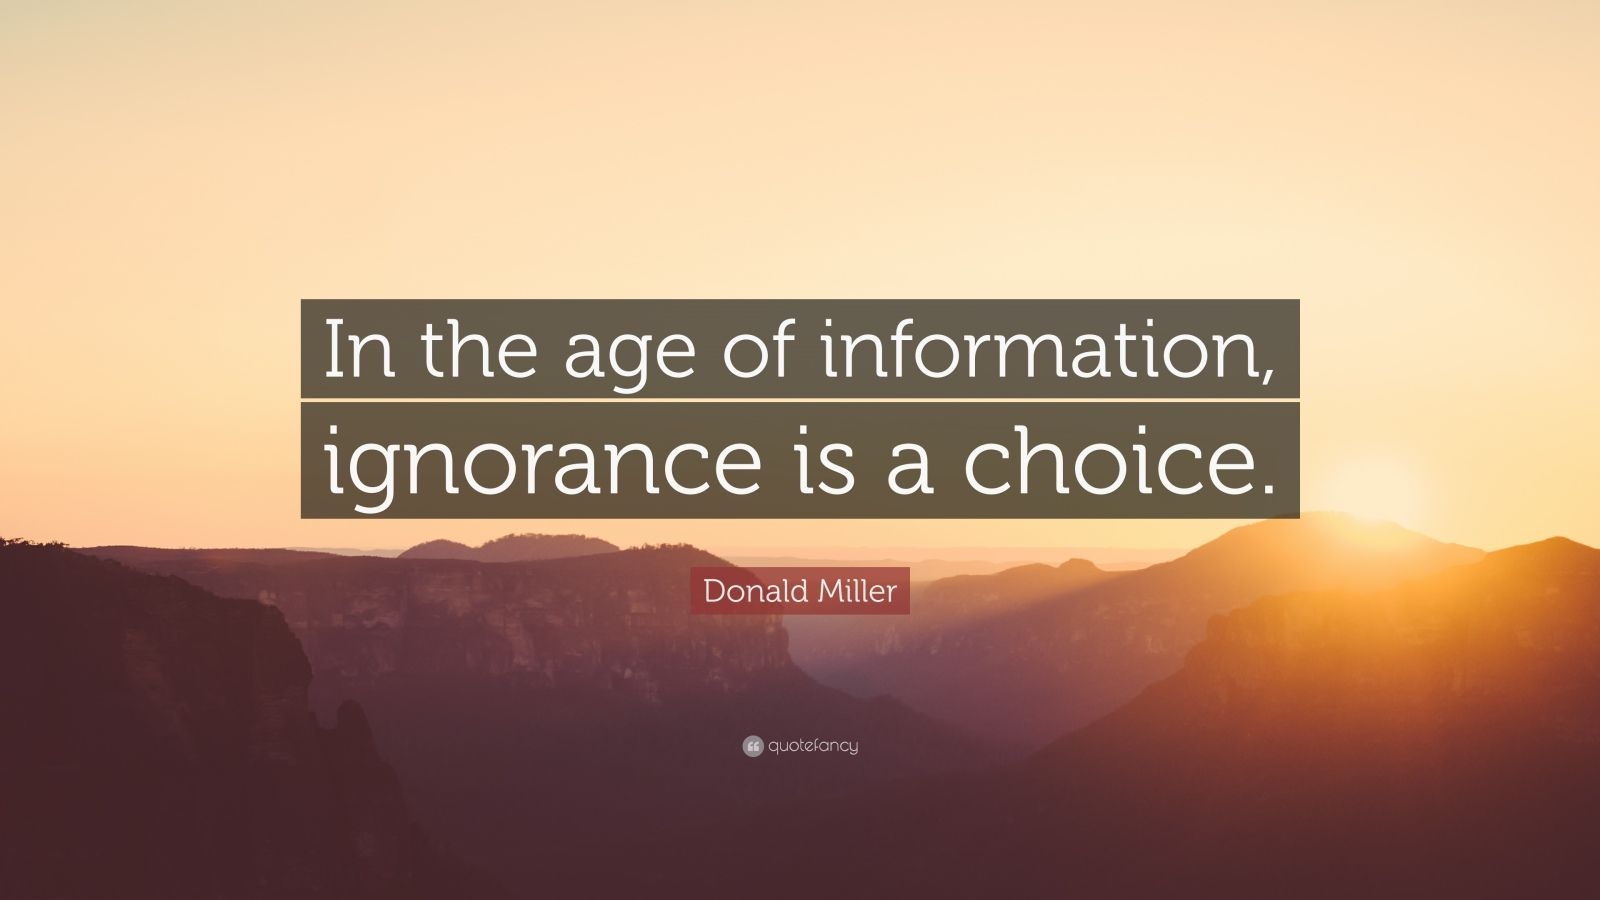 "Ignorance Quotes: ""In the age of information, ignorance is a choice."" — Donald Miller"